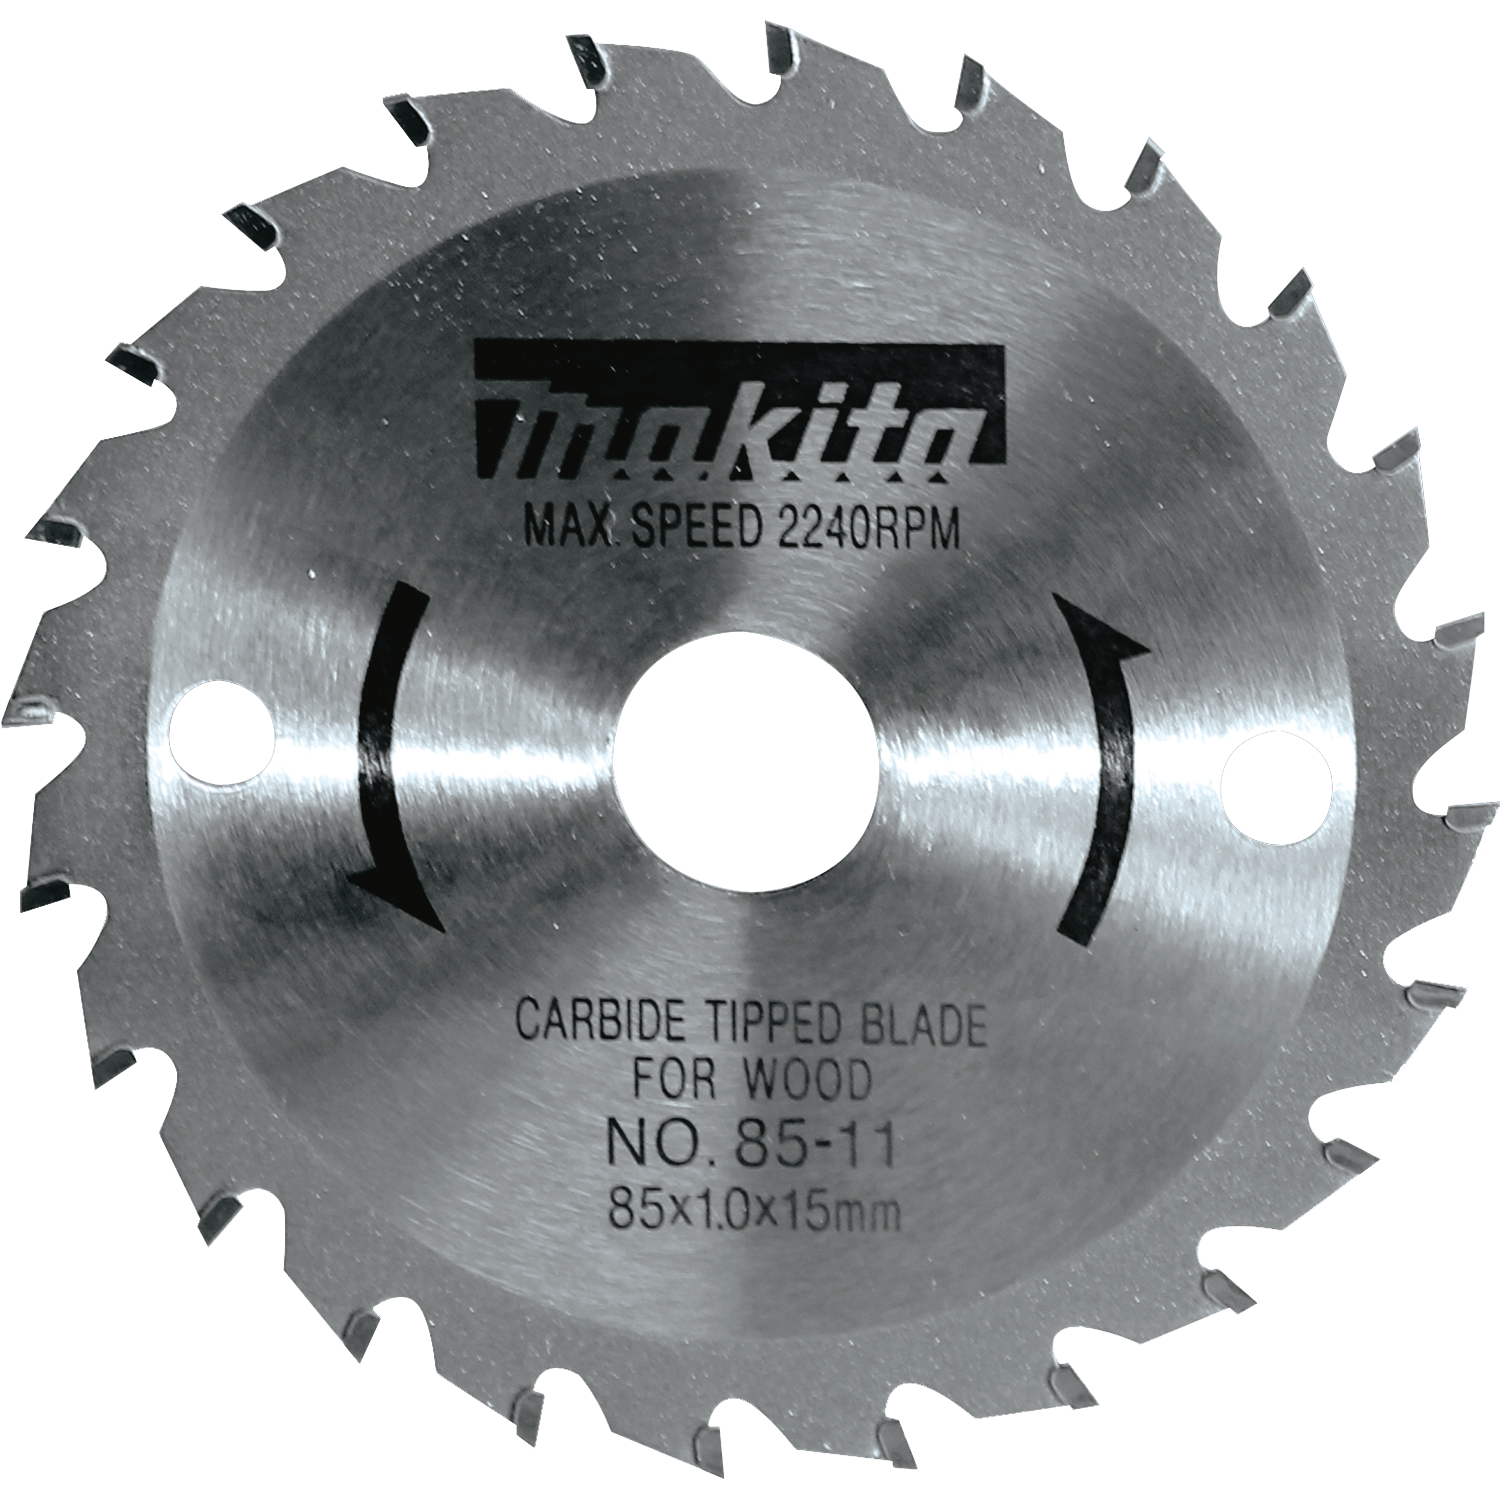 Circular saw blade black and white png. Makita usa product details